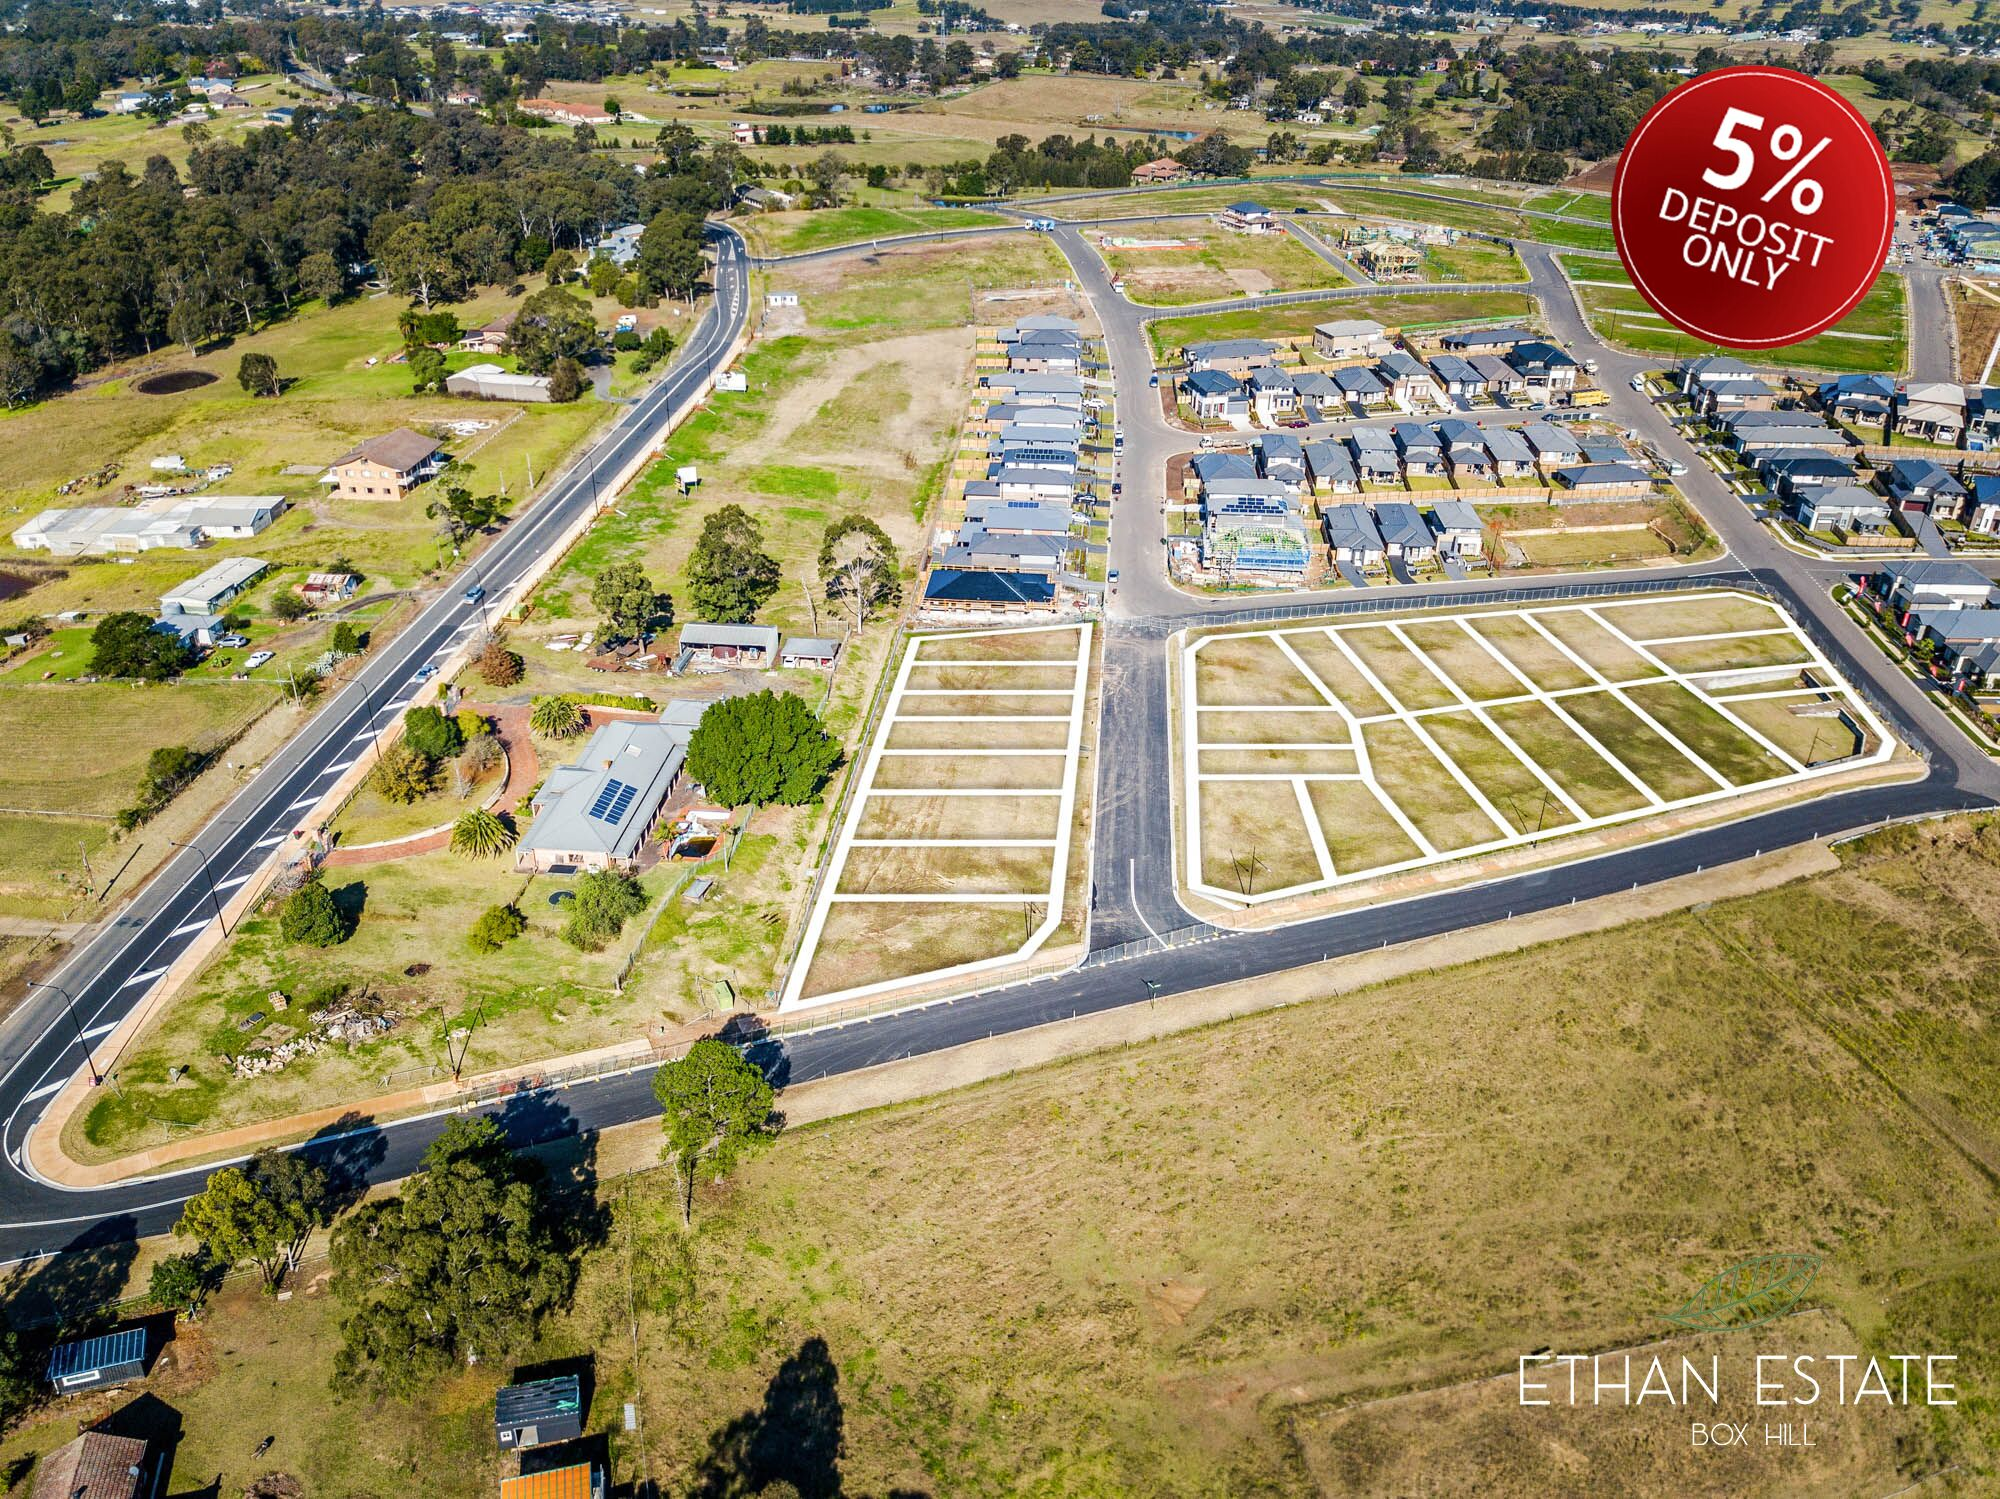 Box Hill NSW 2765 land for Sale, $500,000 - 2014682315 ...